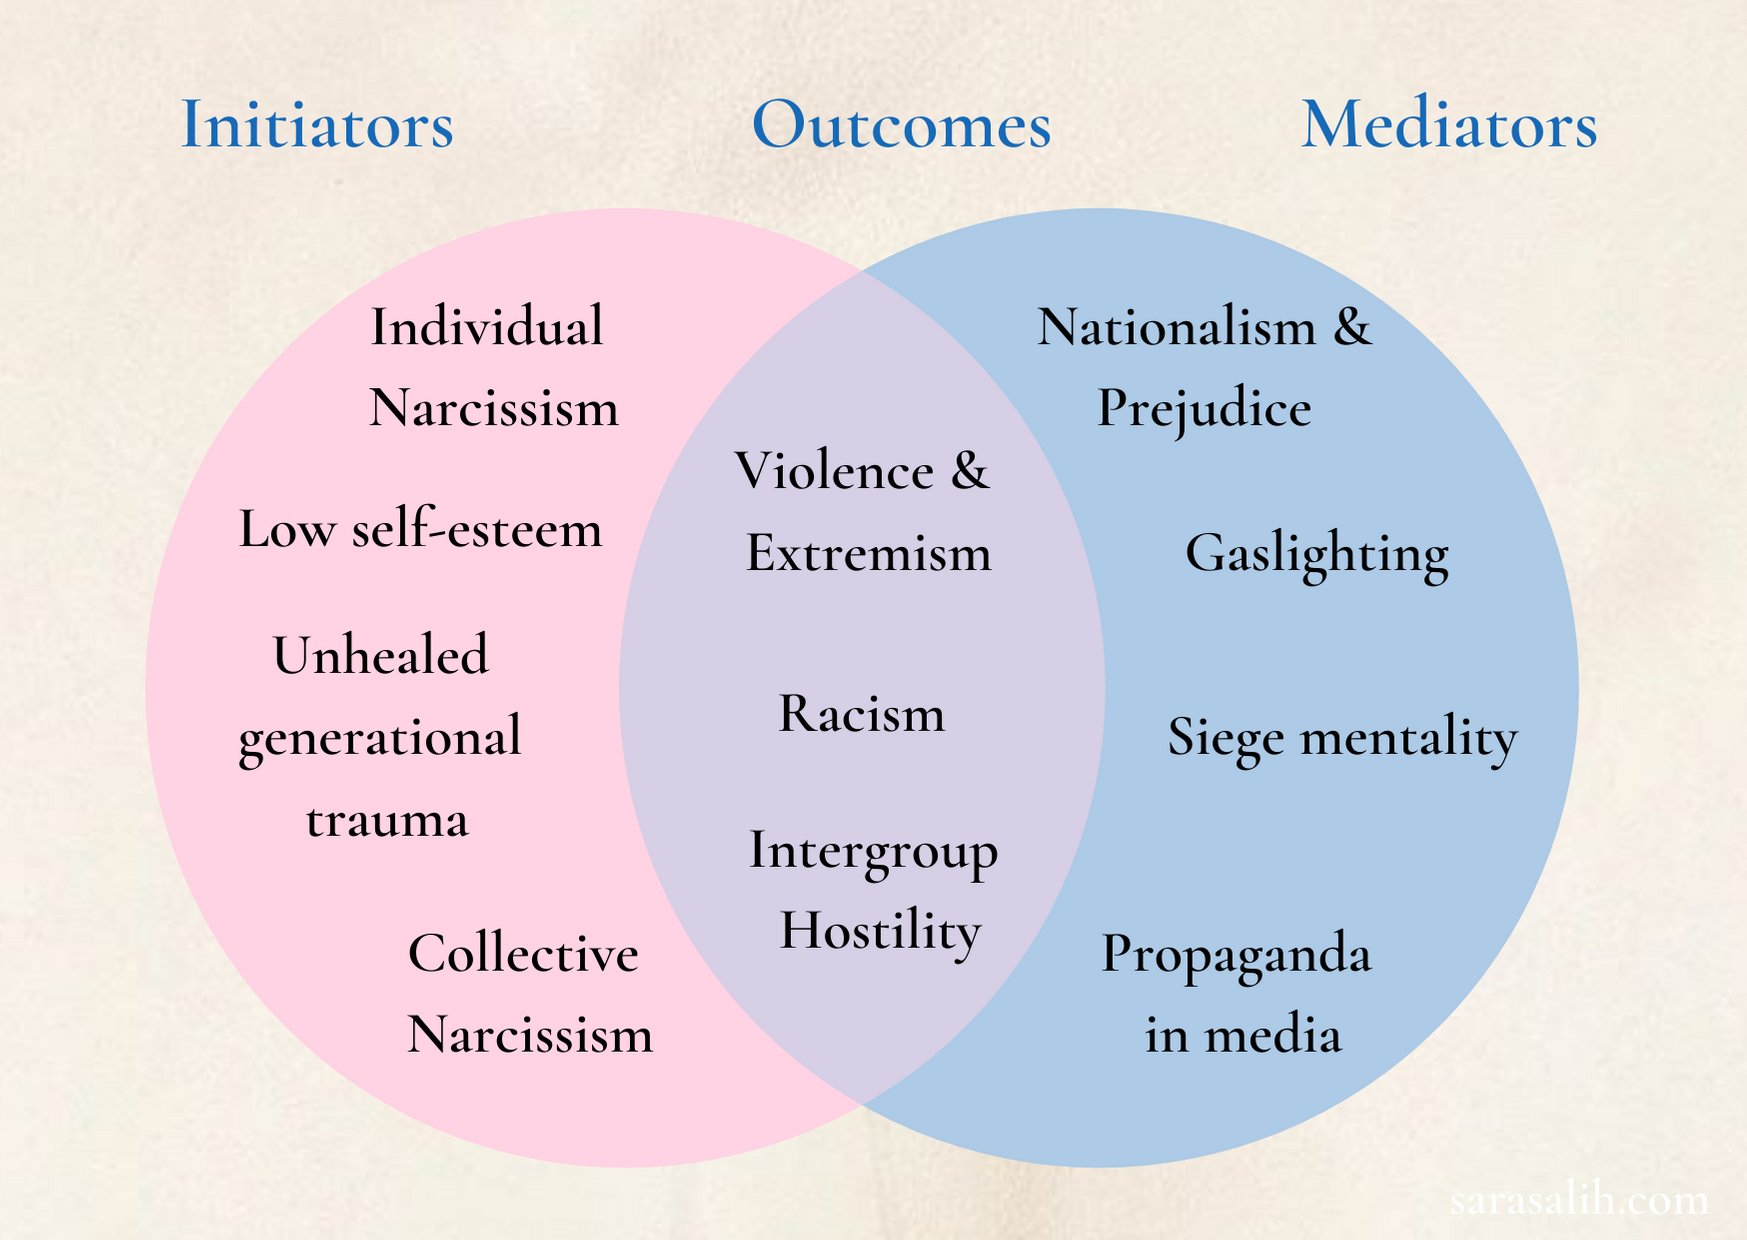 These initiating factors if unaddressed become catalysts for the mediator beliefs and behaviours, leading to outcomes such as violence, murder and ethnic cleansing.